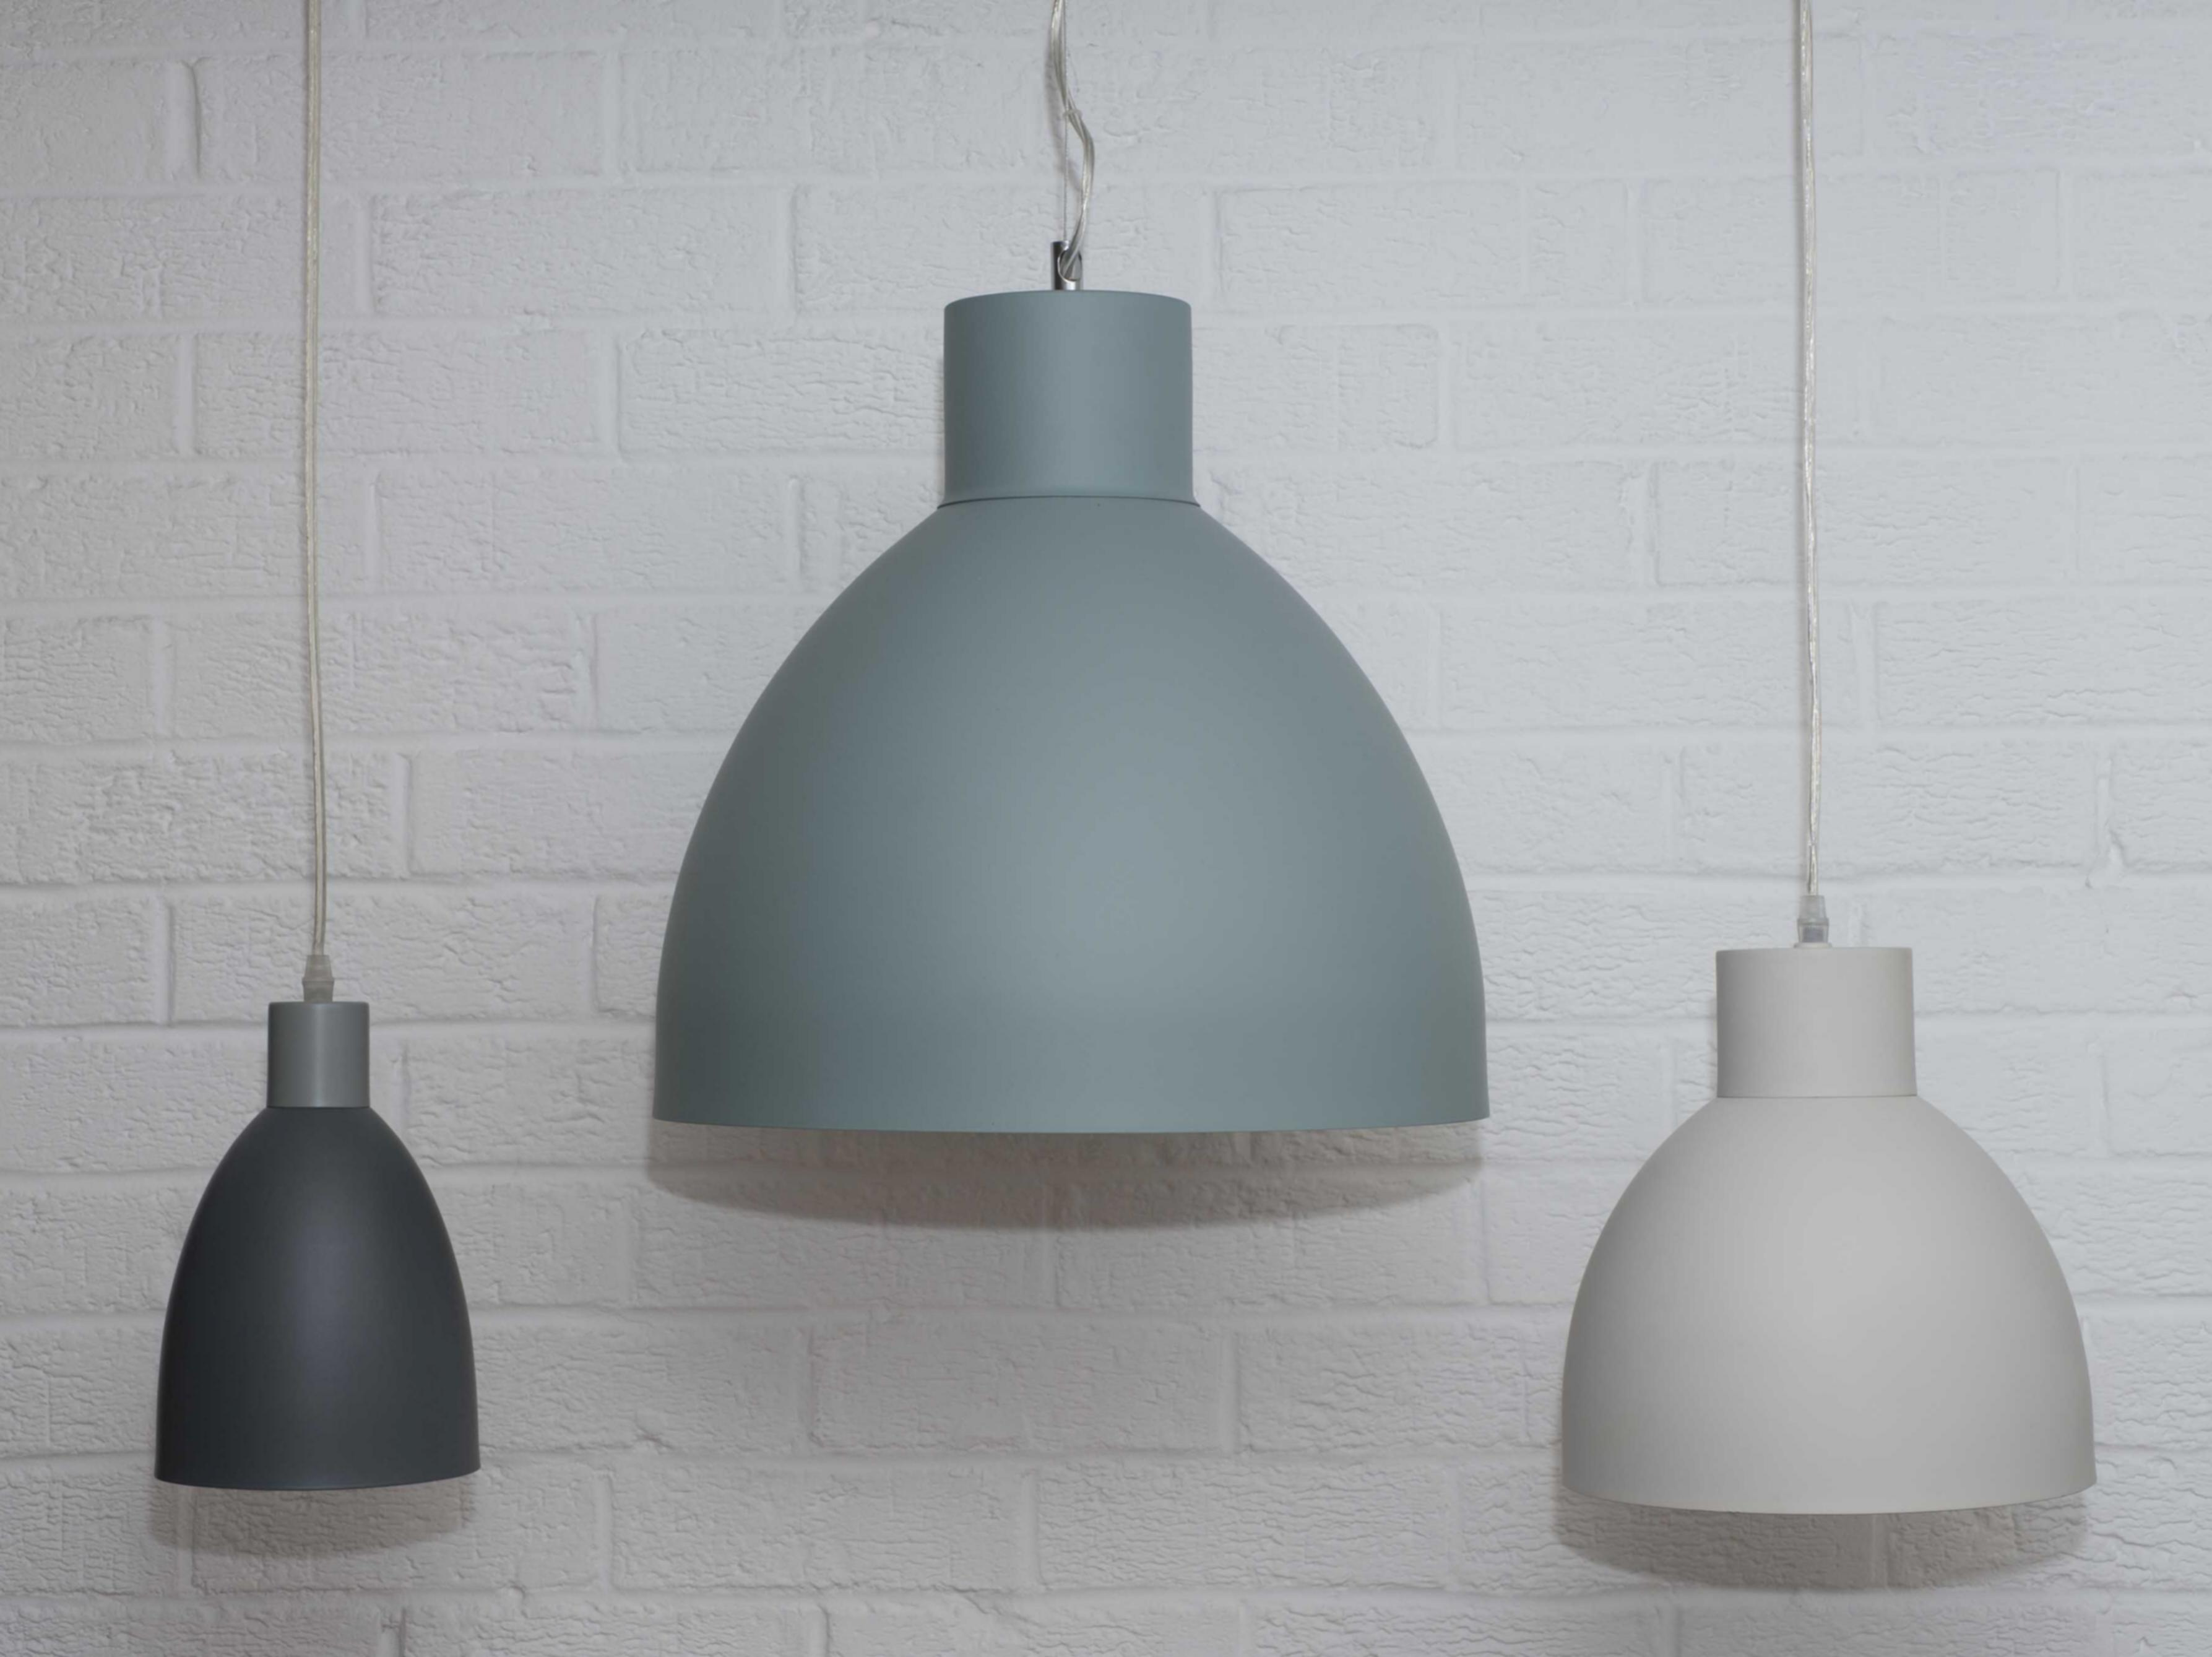 Hanging Pendant Lamp Contrast Pendant Lights Three Sizes Pics - Home ...